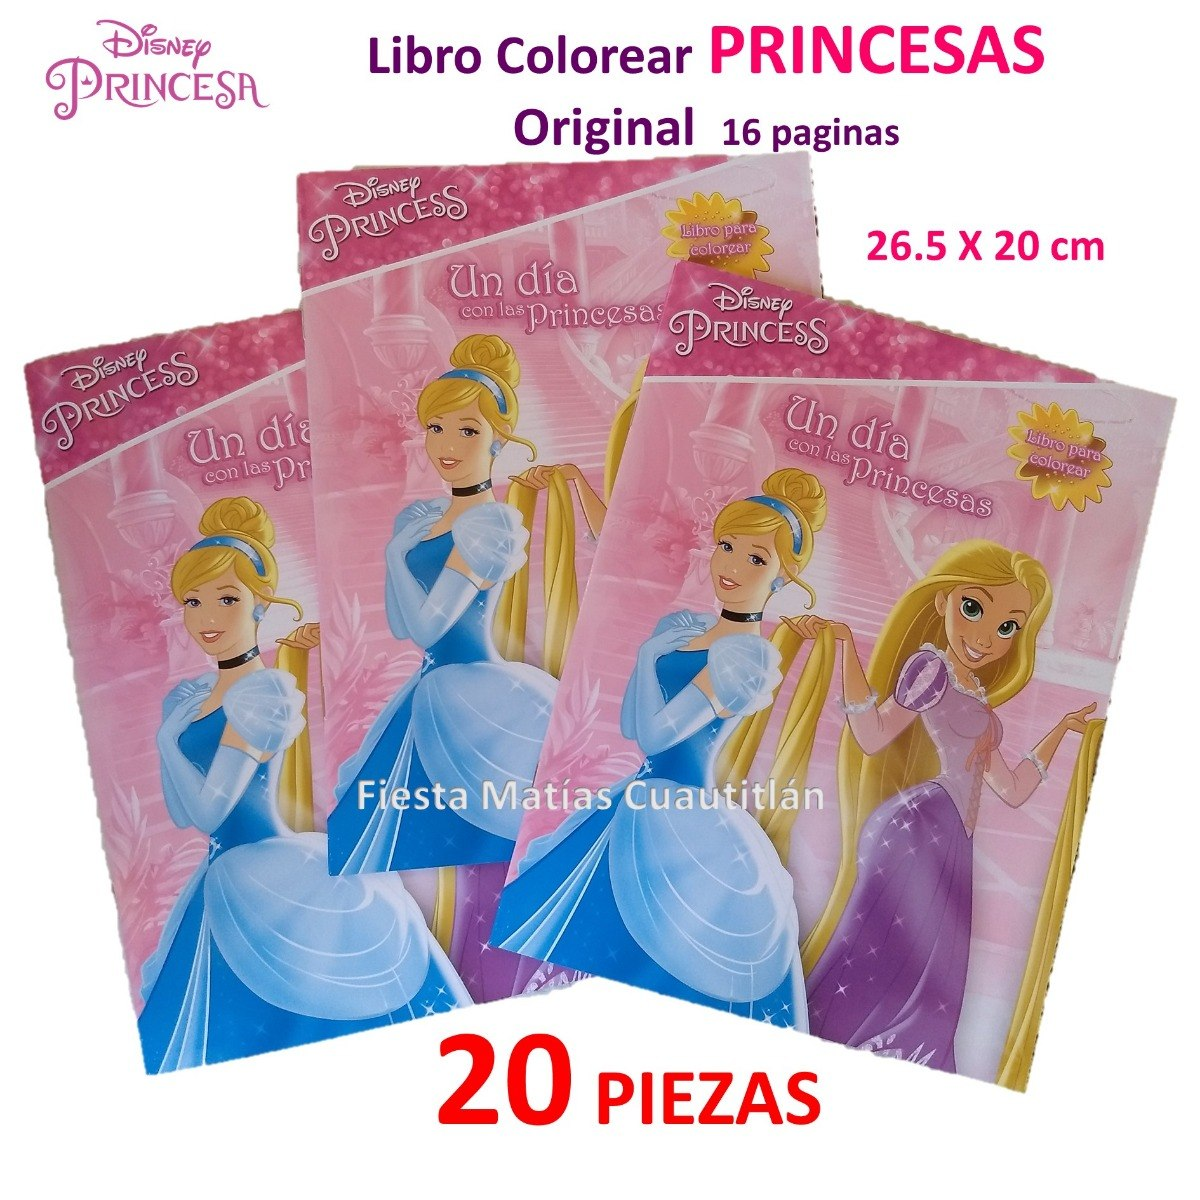 Libro Colorear Princesas Disney 20 Piezas Princess - $ 140.00 en ...